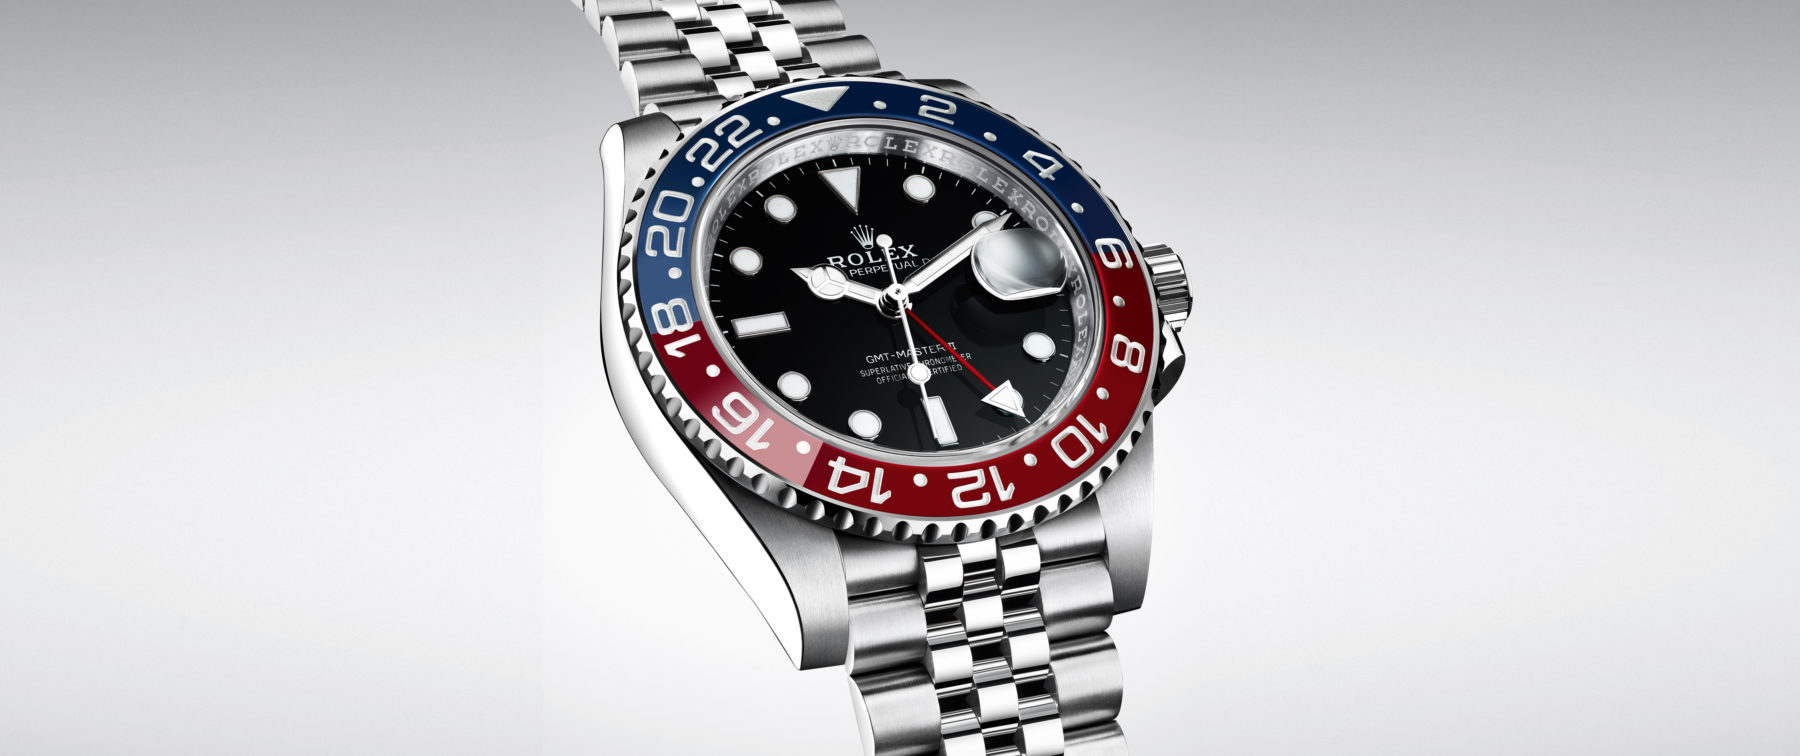 3e619df5135 Watch of the Week  Rolex GMT-Master II